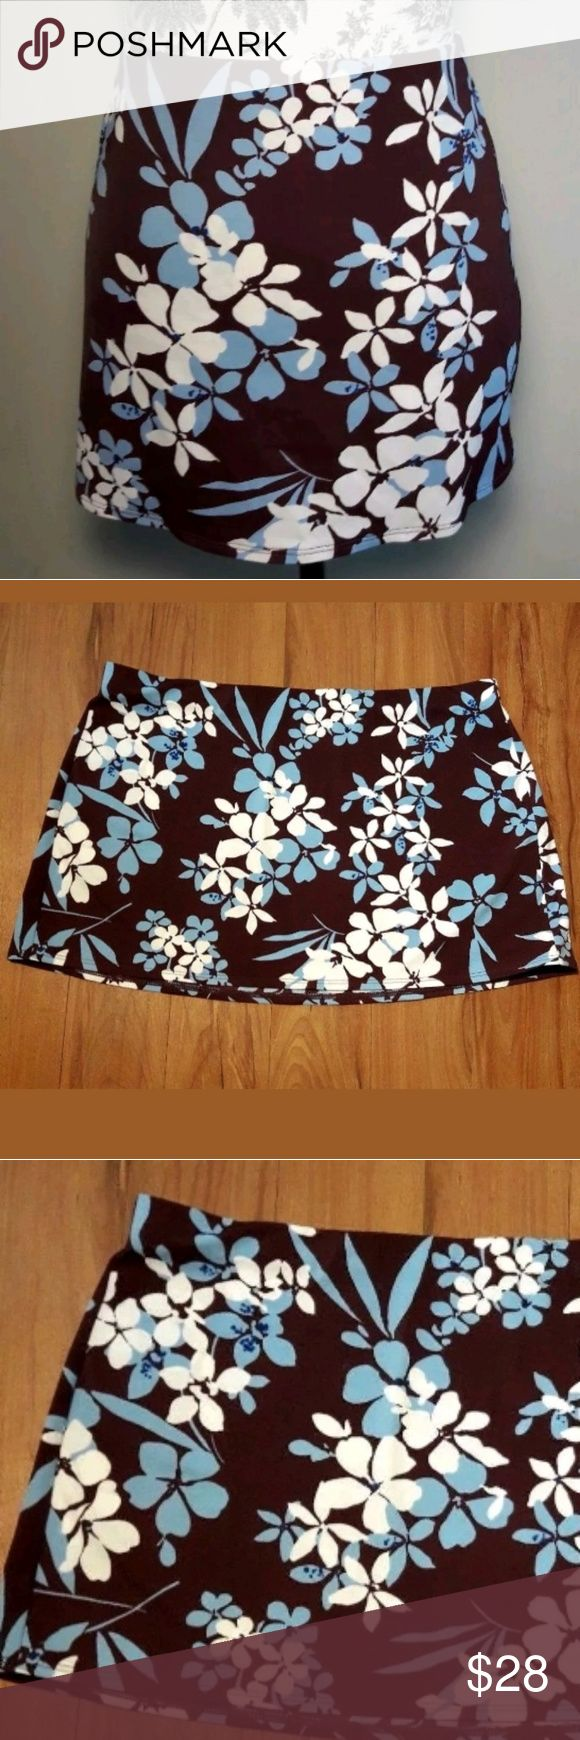 Victoria's Secret Swim Skirt Cover Up Size Large Victorias Secret   Beautiful Swim Skirt Bathing Suit Cover Up Wine/Blue/White Floral Size Large. Perfect for any day at the beach. A Must Have!  Pre-owned in Excellent condition  Please view all images  Thank you for Looking & Sharing Happy Poshing😄 Victoria's Secret Swim Coverups